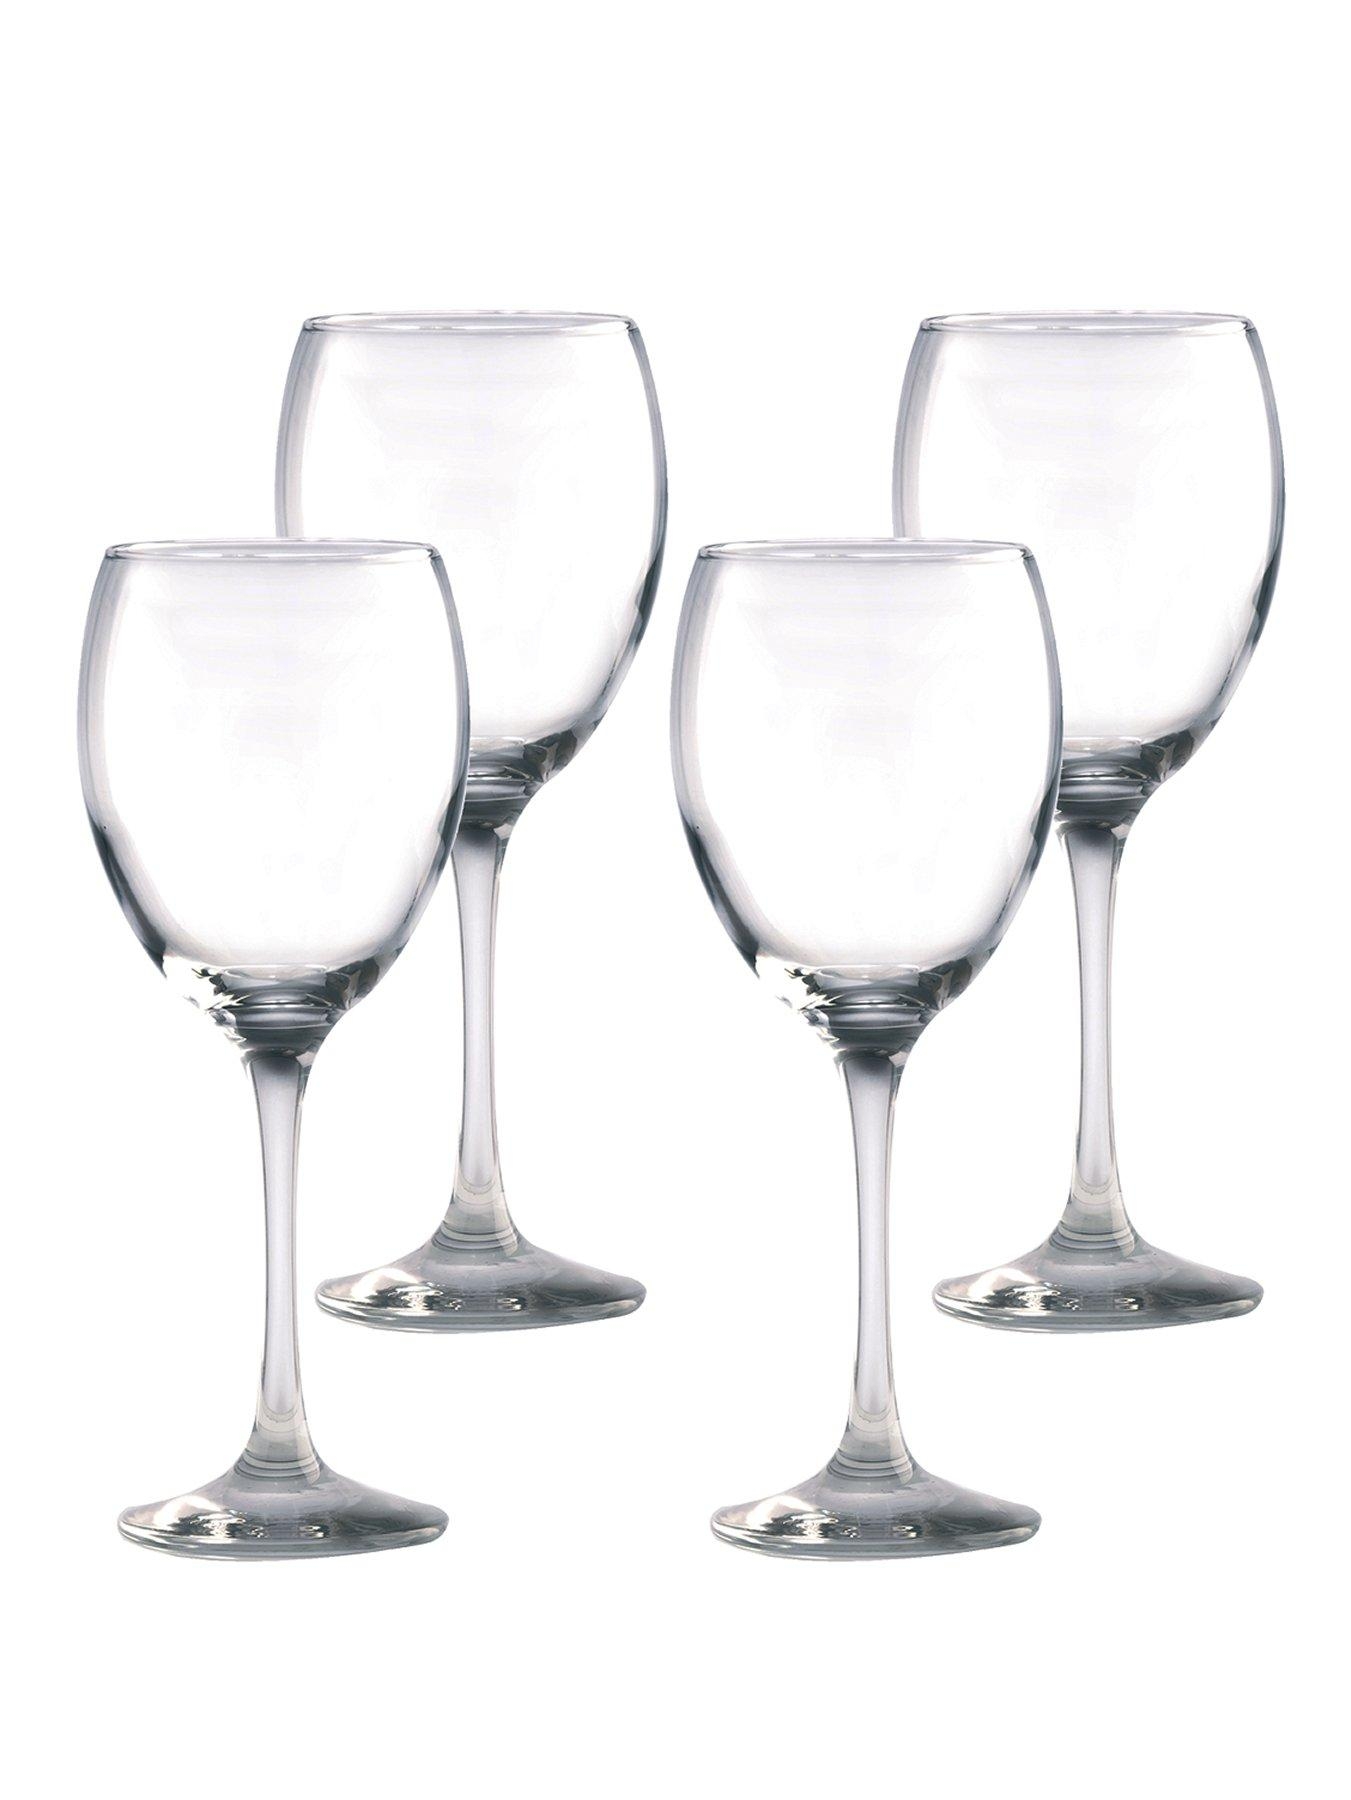 Mode 4 Wine Glasses